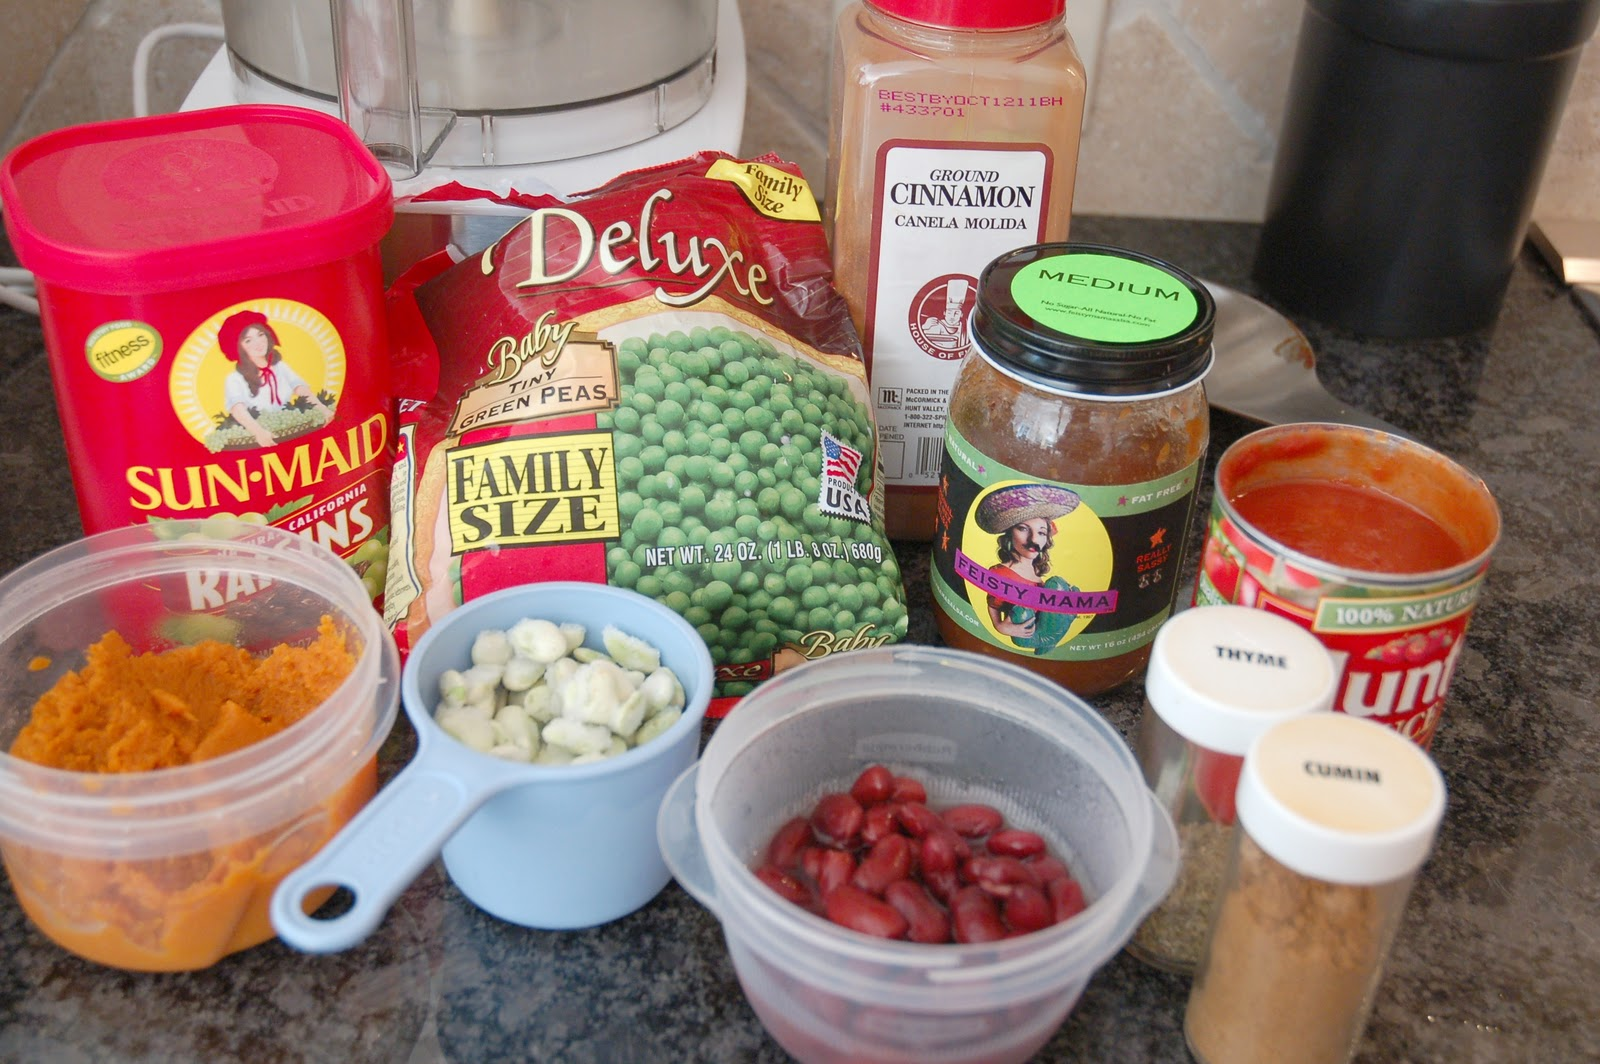 how to make stew peas thicker